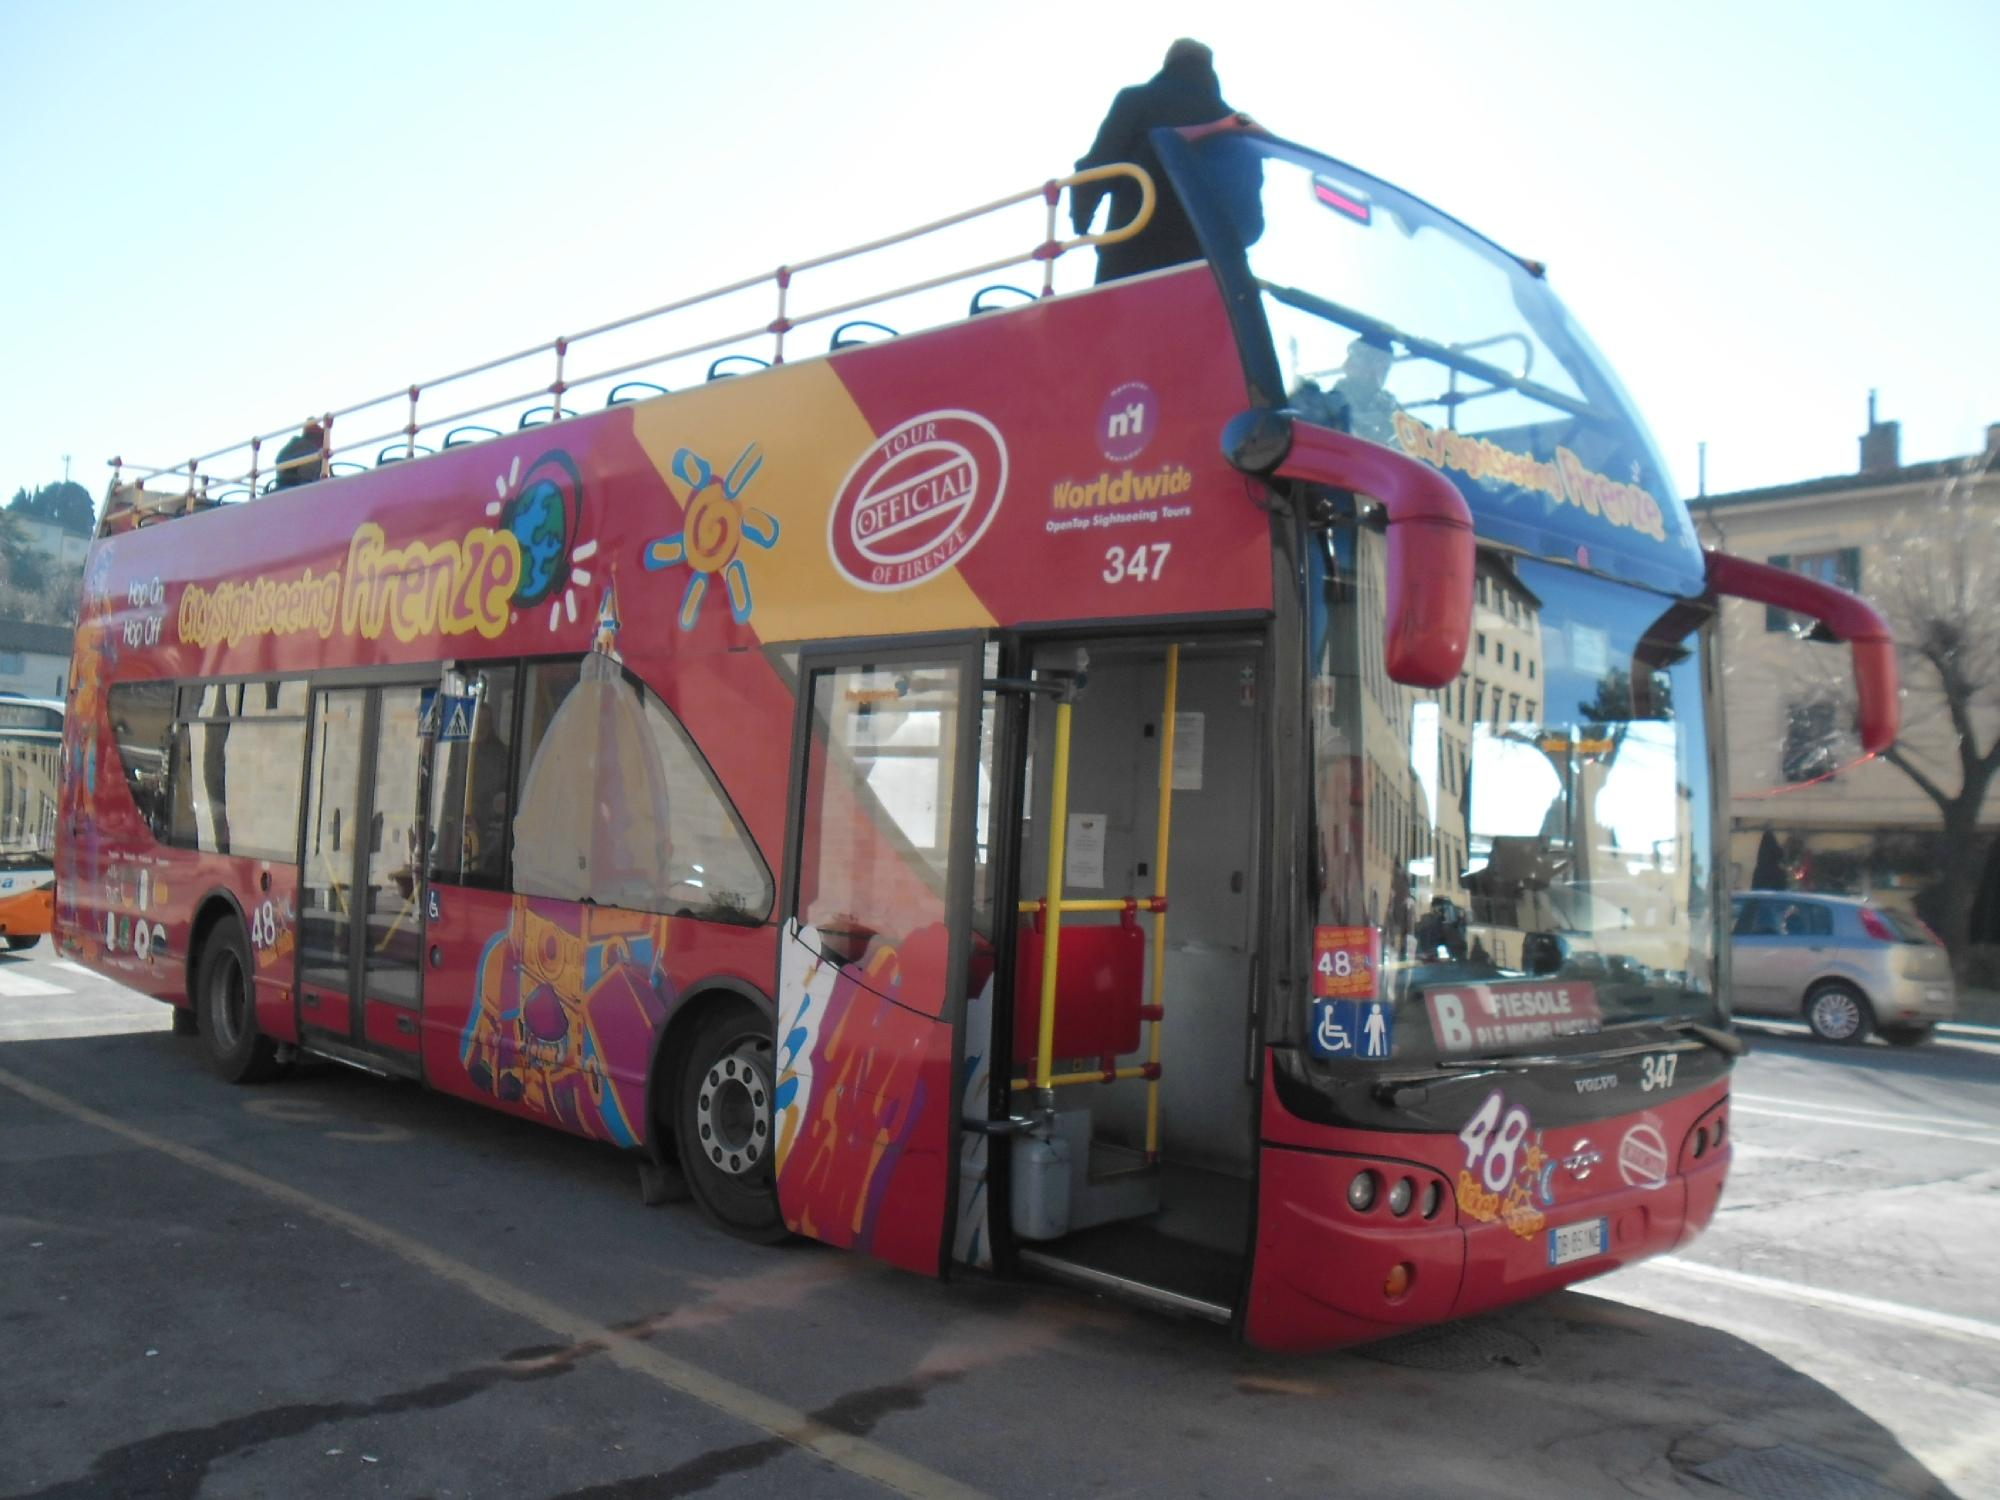 City Sightseeing Firenze